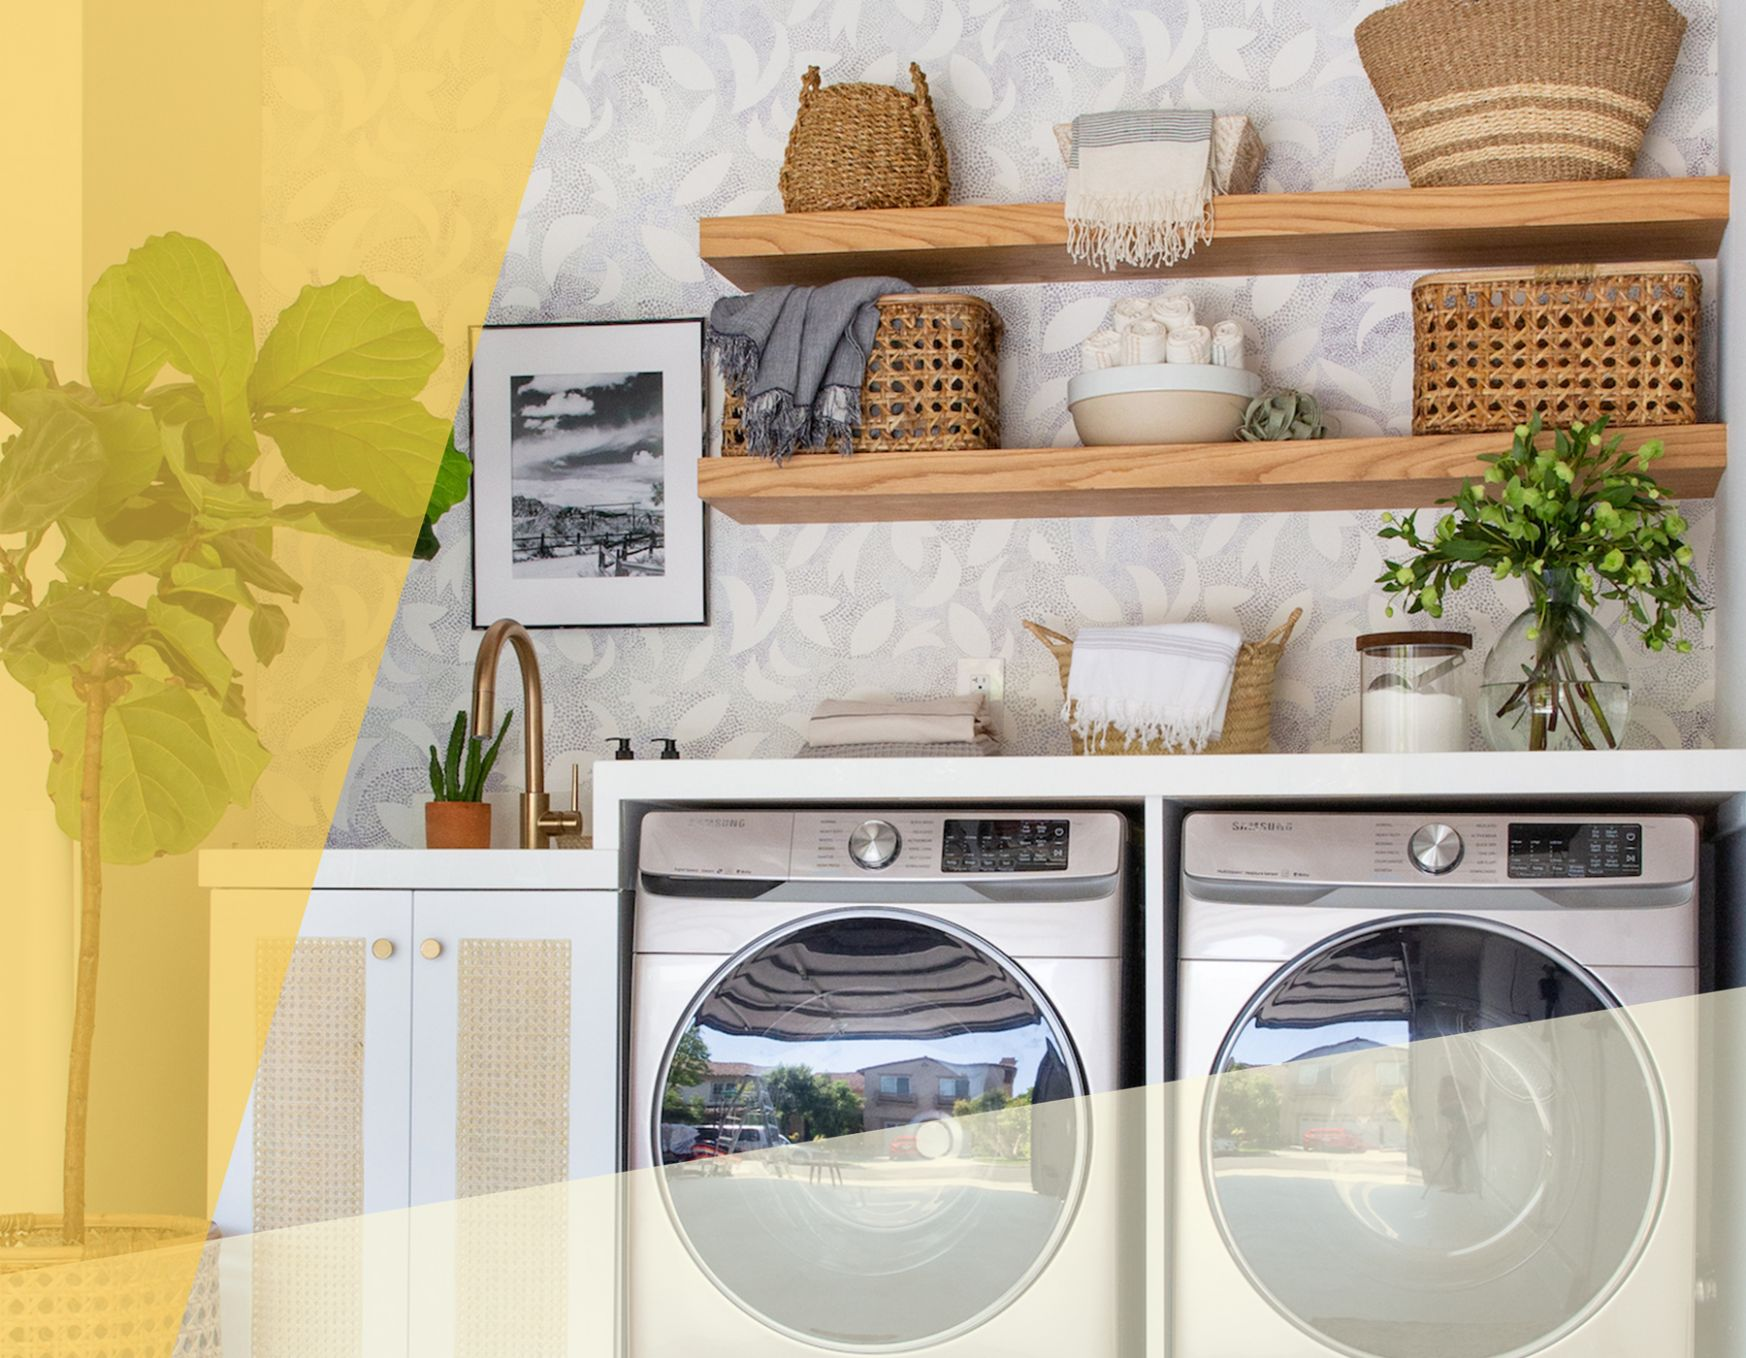 Design Ideas From a Gorgeous Garage-Turned-Laundry Room | Real Simple - laundry room ideas in garage